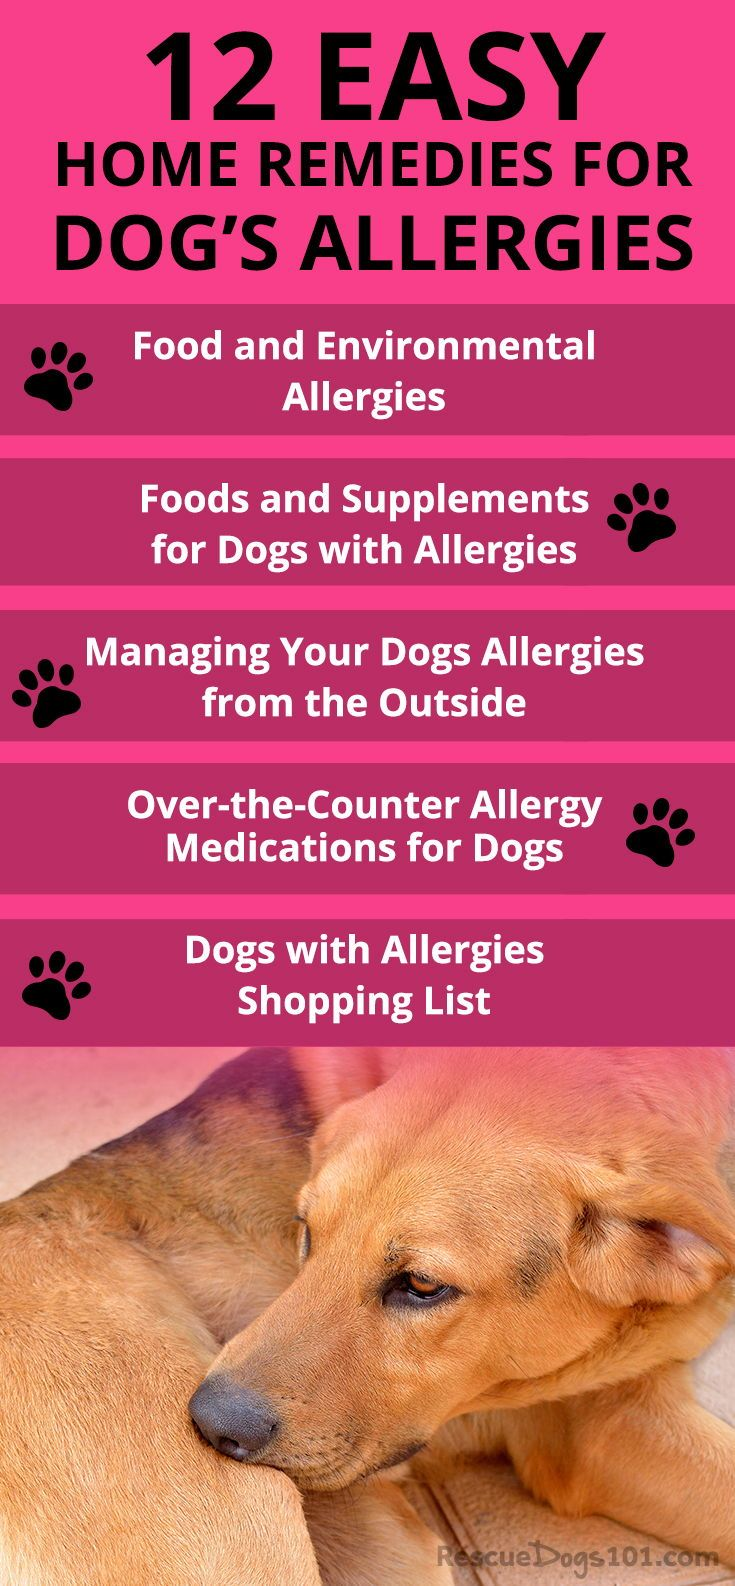 The Ultimate Guide To Home Remedies For Dog Allergies Dog Itching Remedies Dog Allergies Dog Remedies